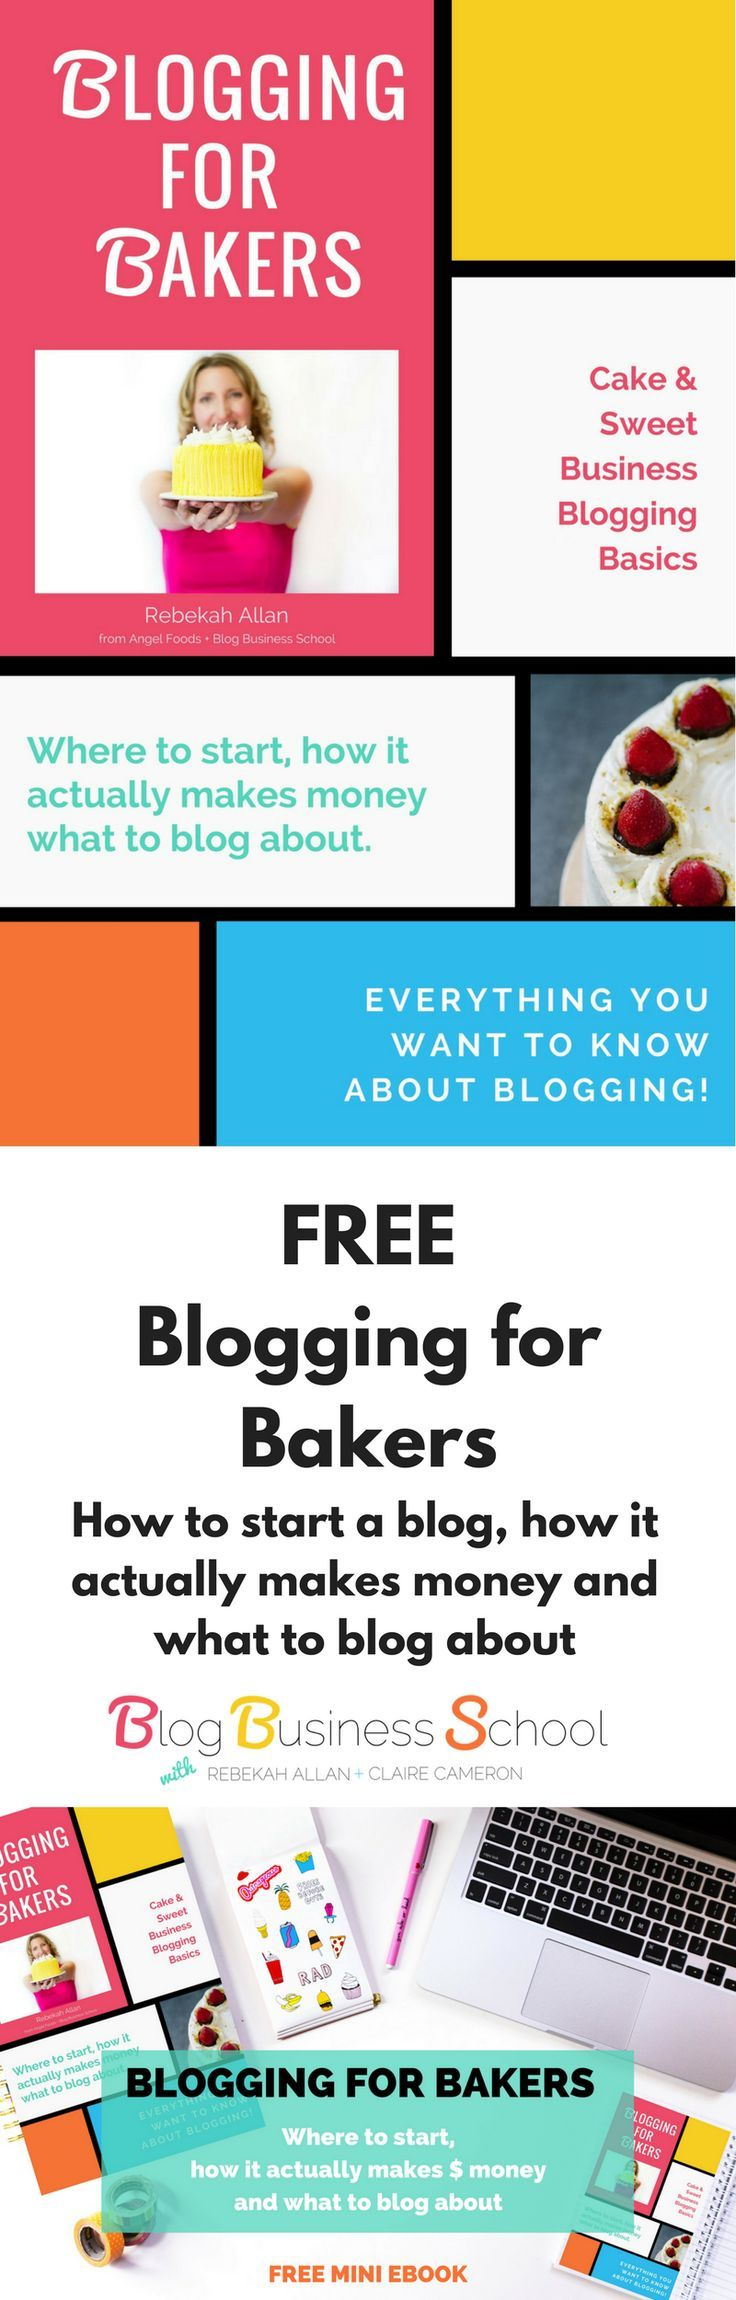 Blogging for Bakers free mini eBook | Cake & Sweet Business Blogging Basics. Where to start, how it actually makes money, what to blog about! (Everything you need to know about blogging). https://rebekahallan.com/free-caker-blogging-book/